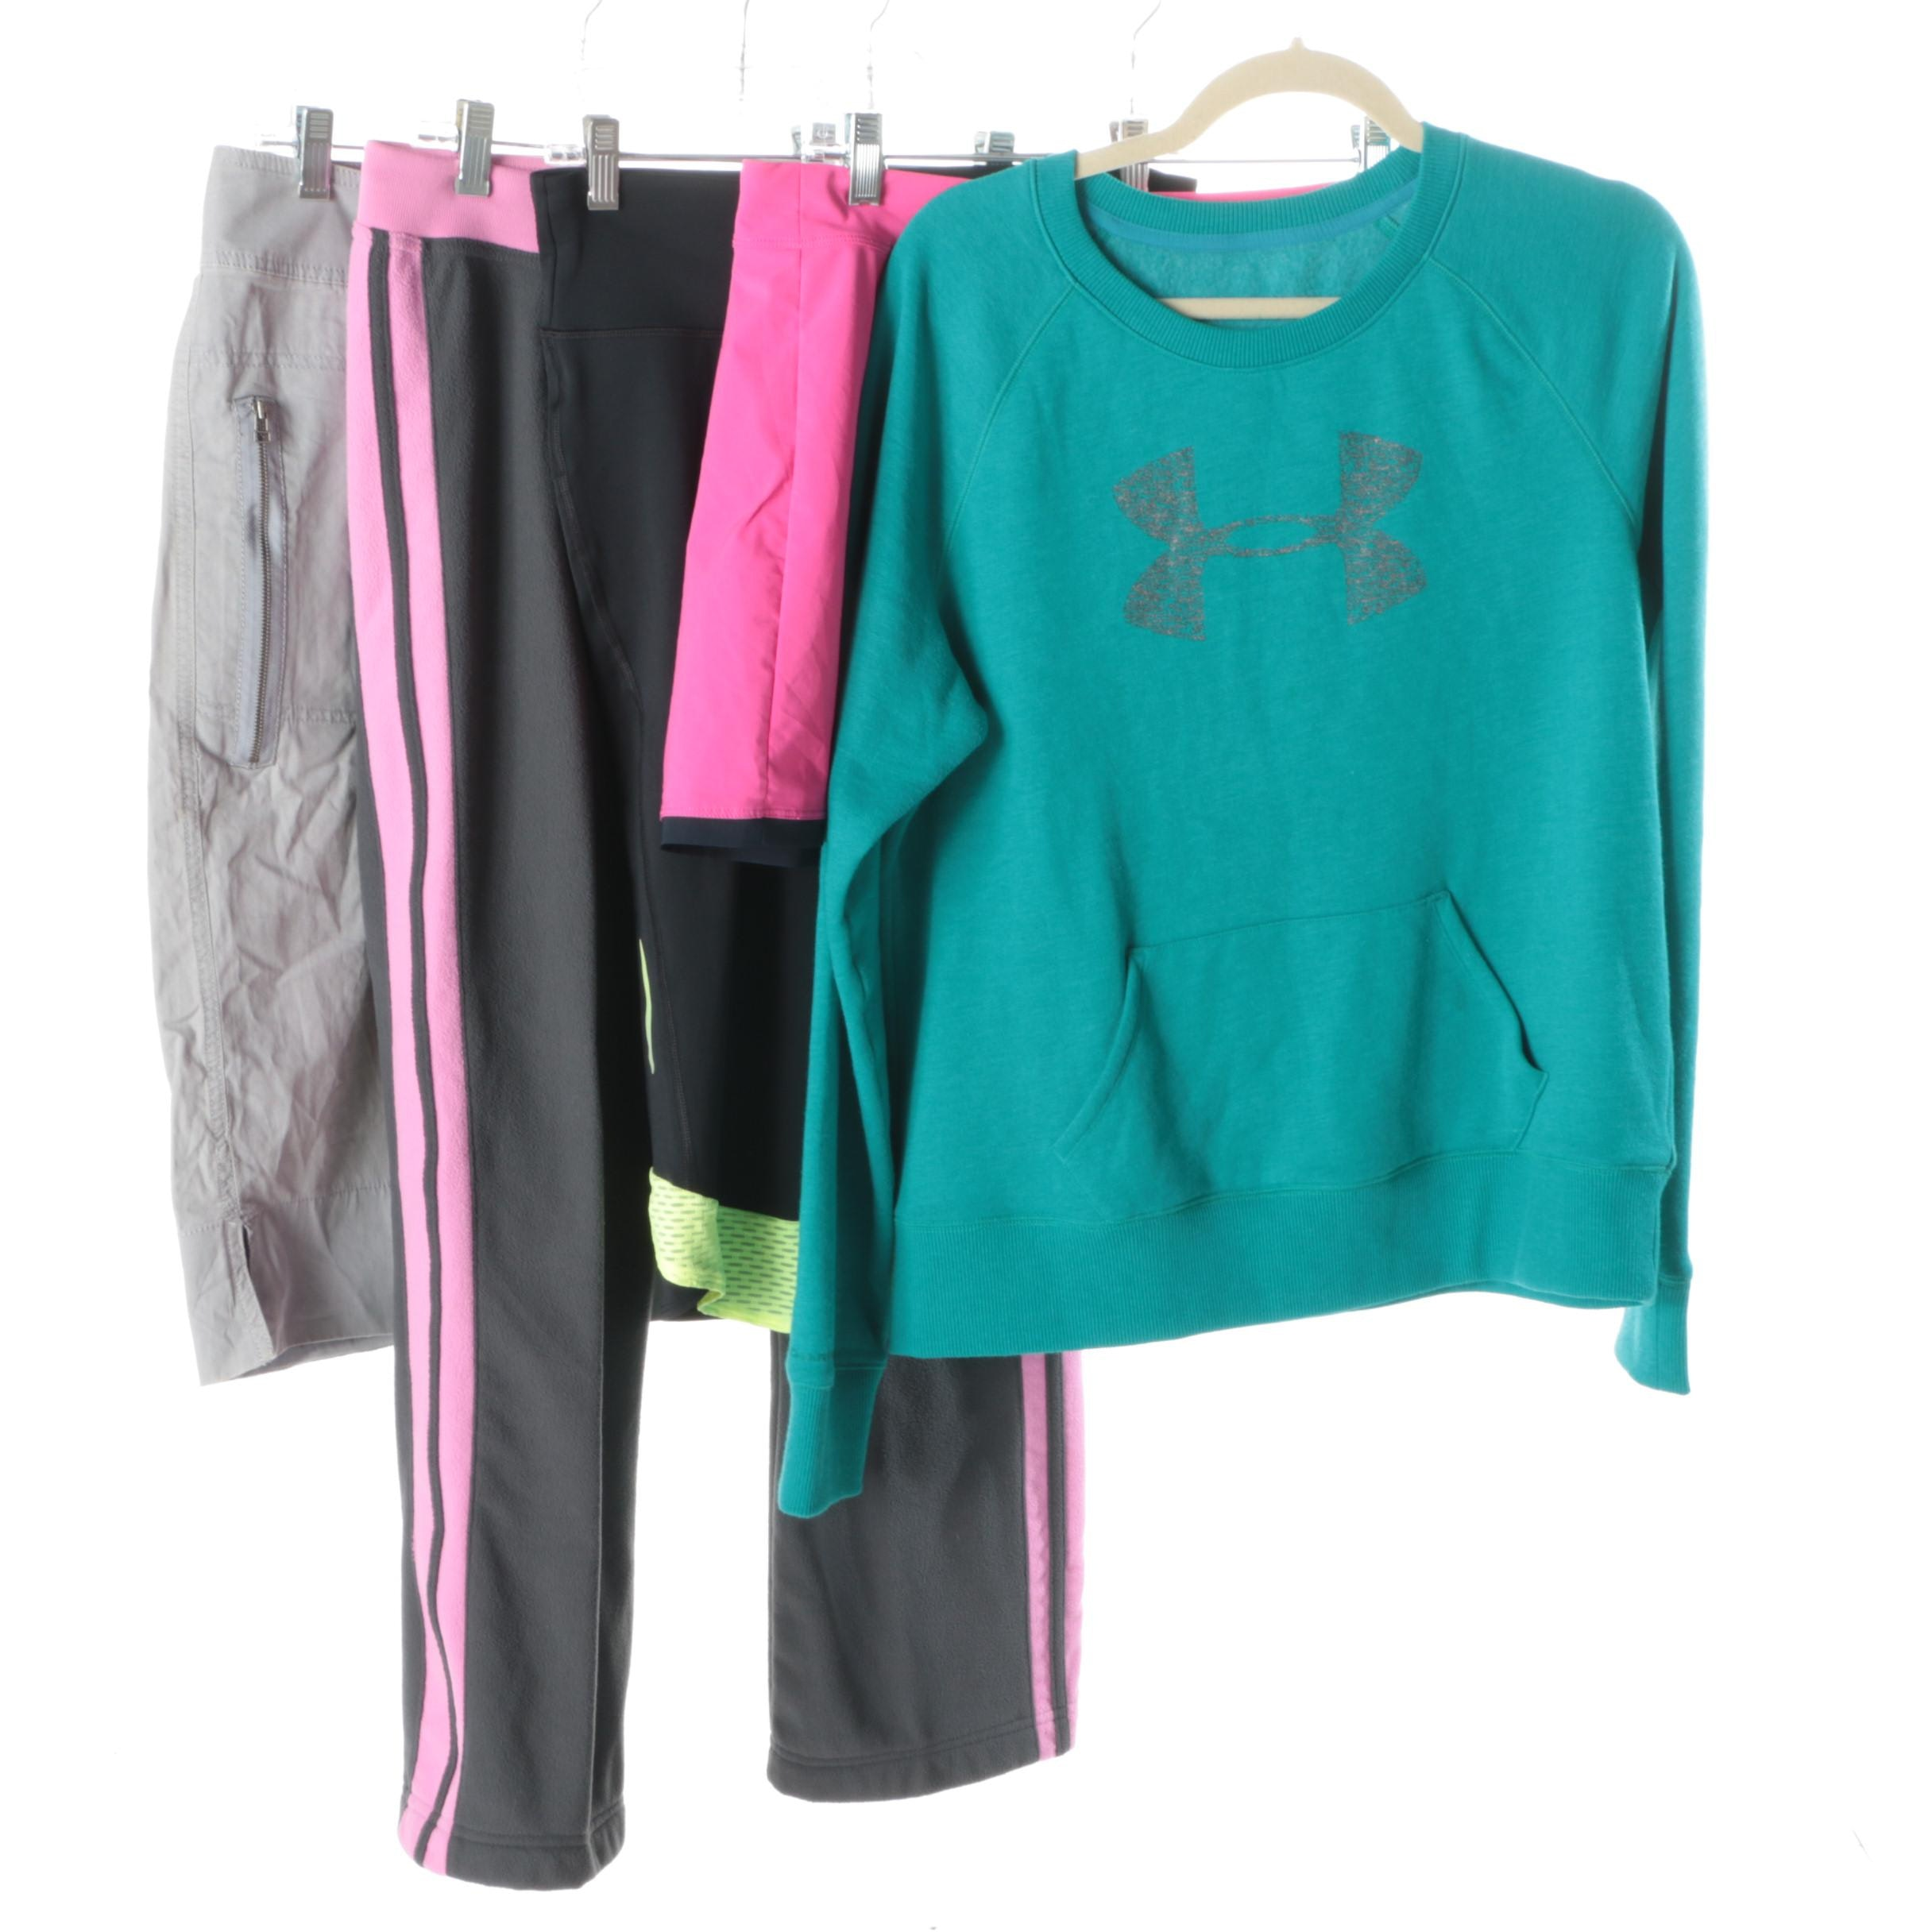 Women's Athletic Separates Including The North Face